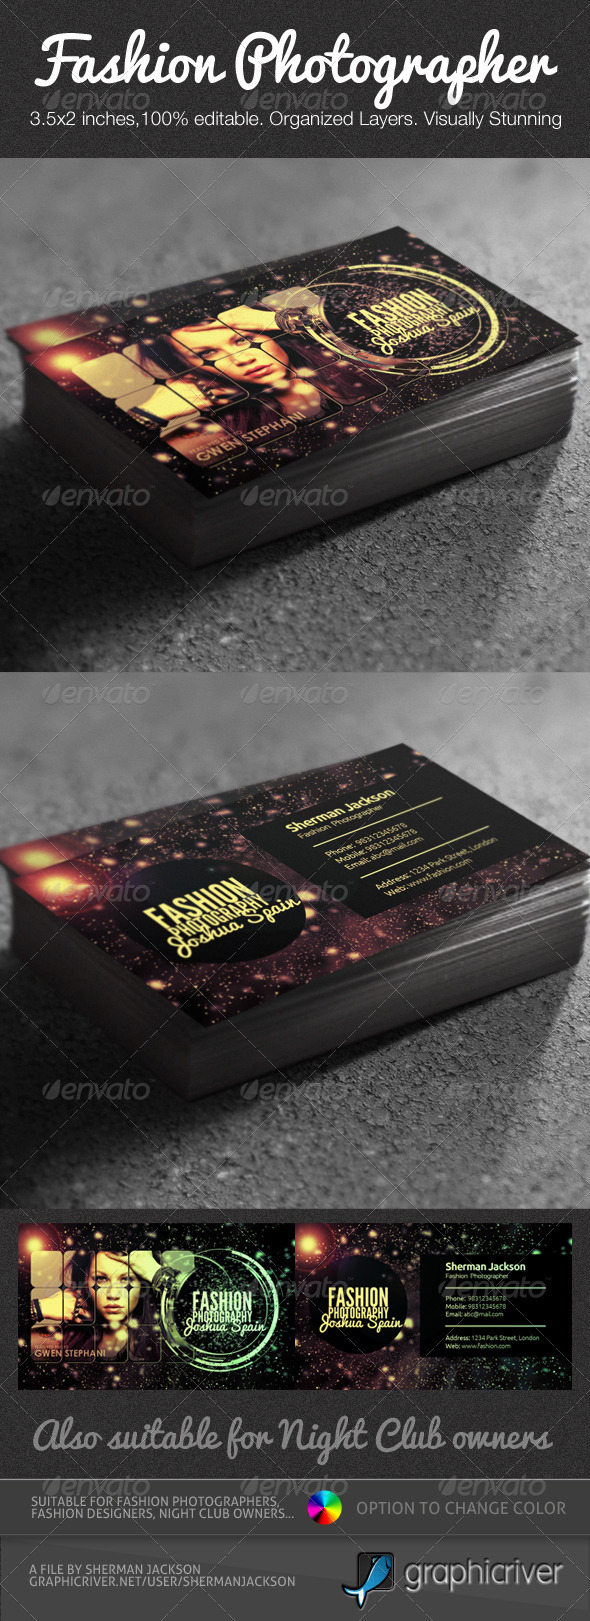 Creative fashion photographer business card psd by shermanjackson creative fashion photographer business card psd industry specific business cards reheart Images